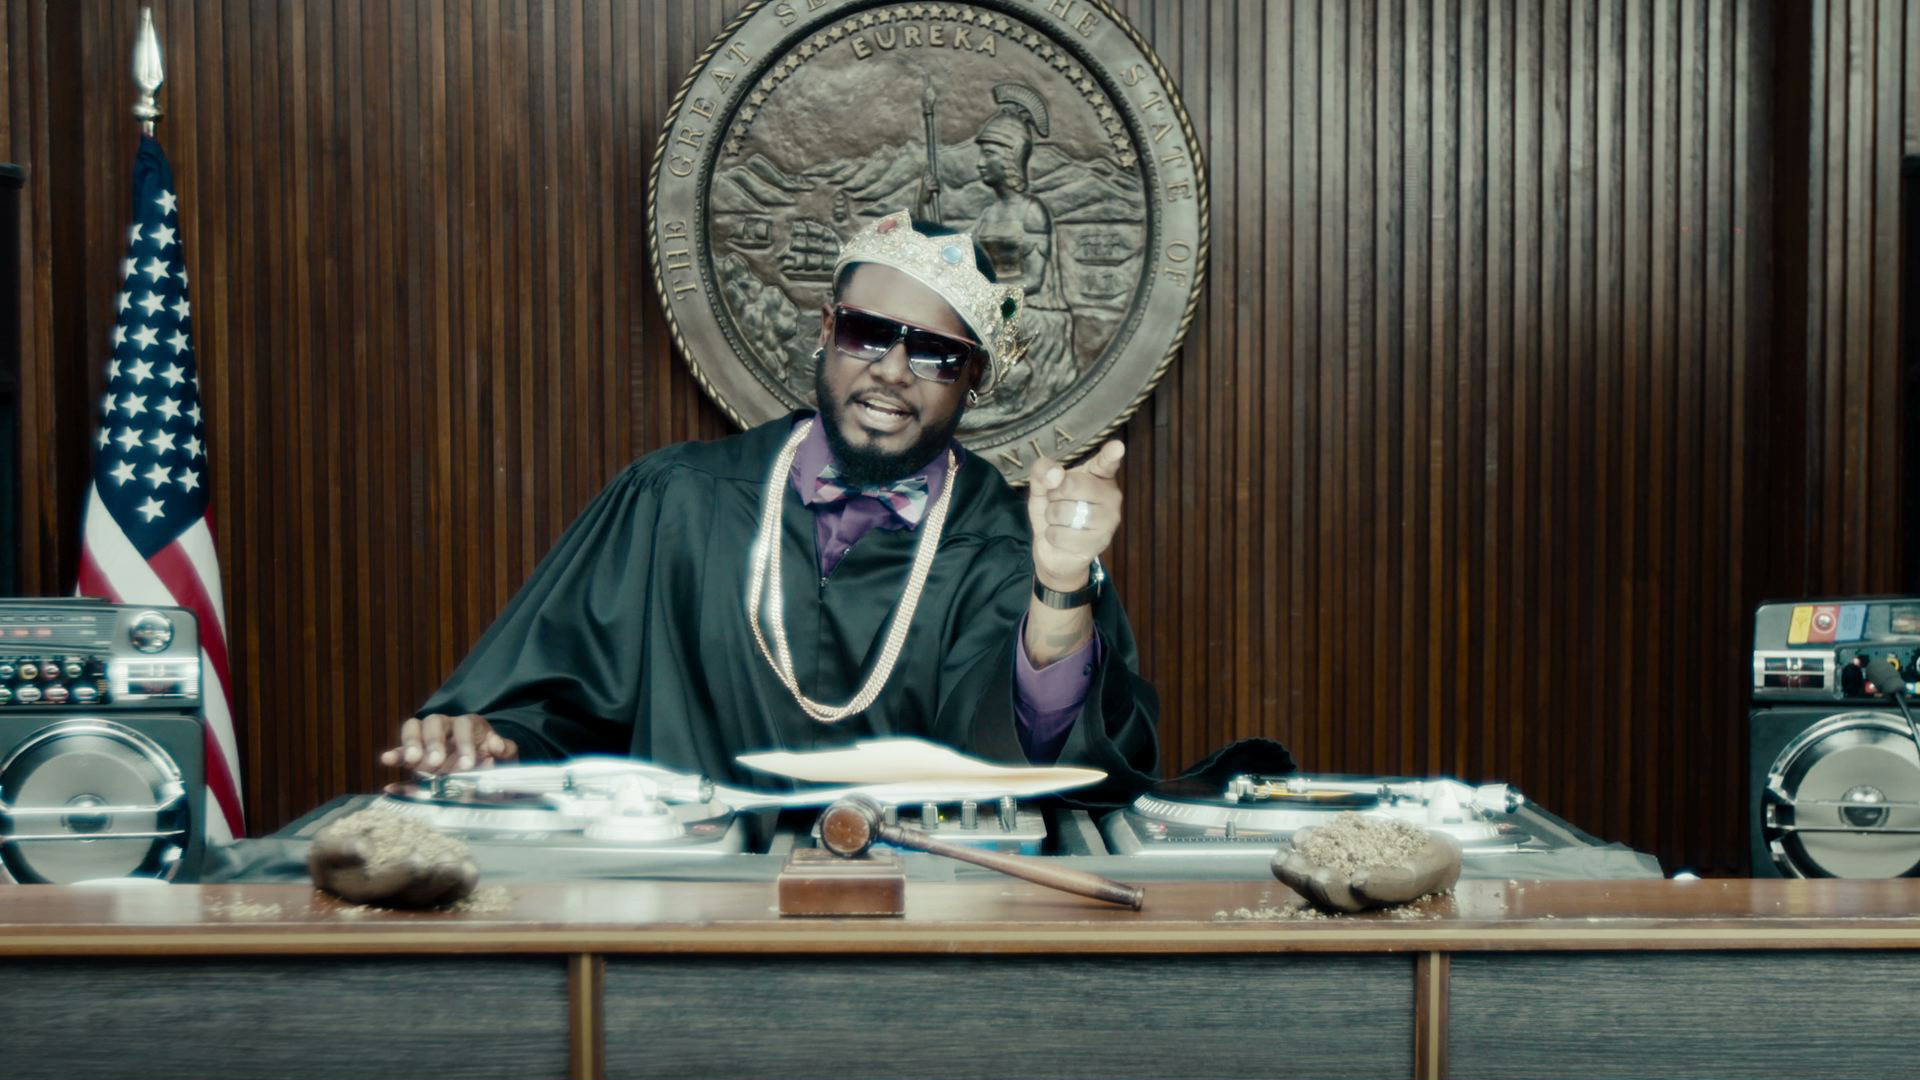 HIP-HOP COURTROOM - THE COURT WHERE THE LAWS OF HIP HOP REIGN SUPREME